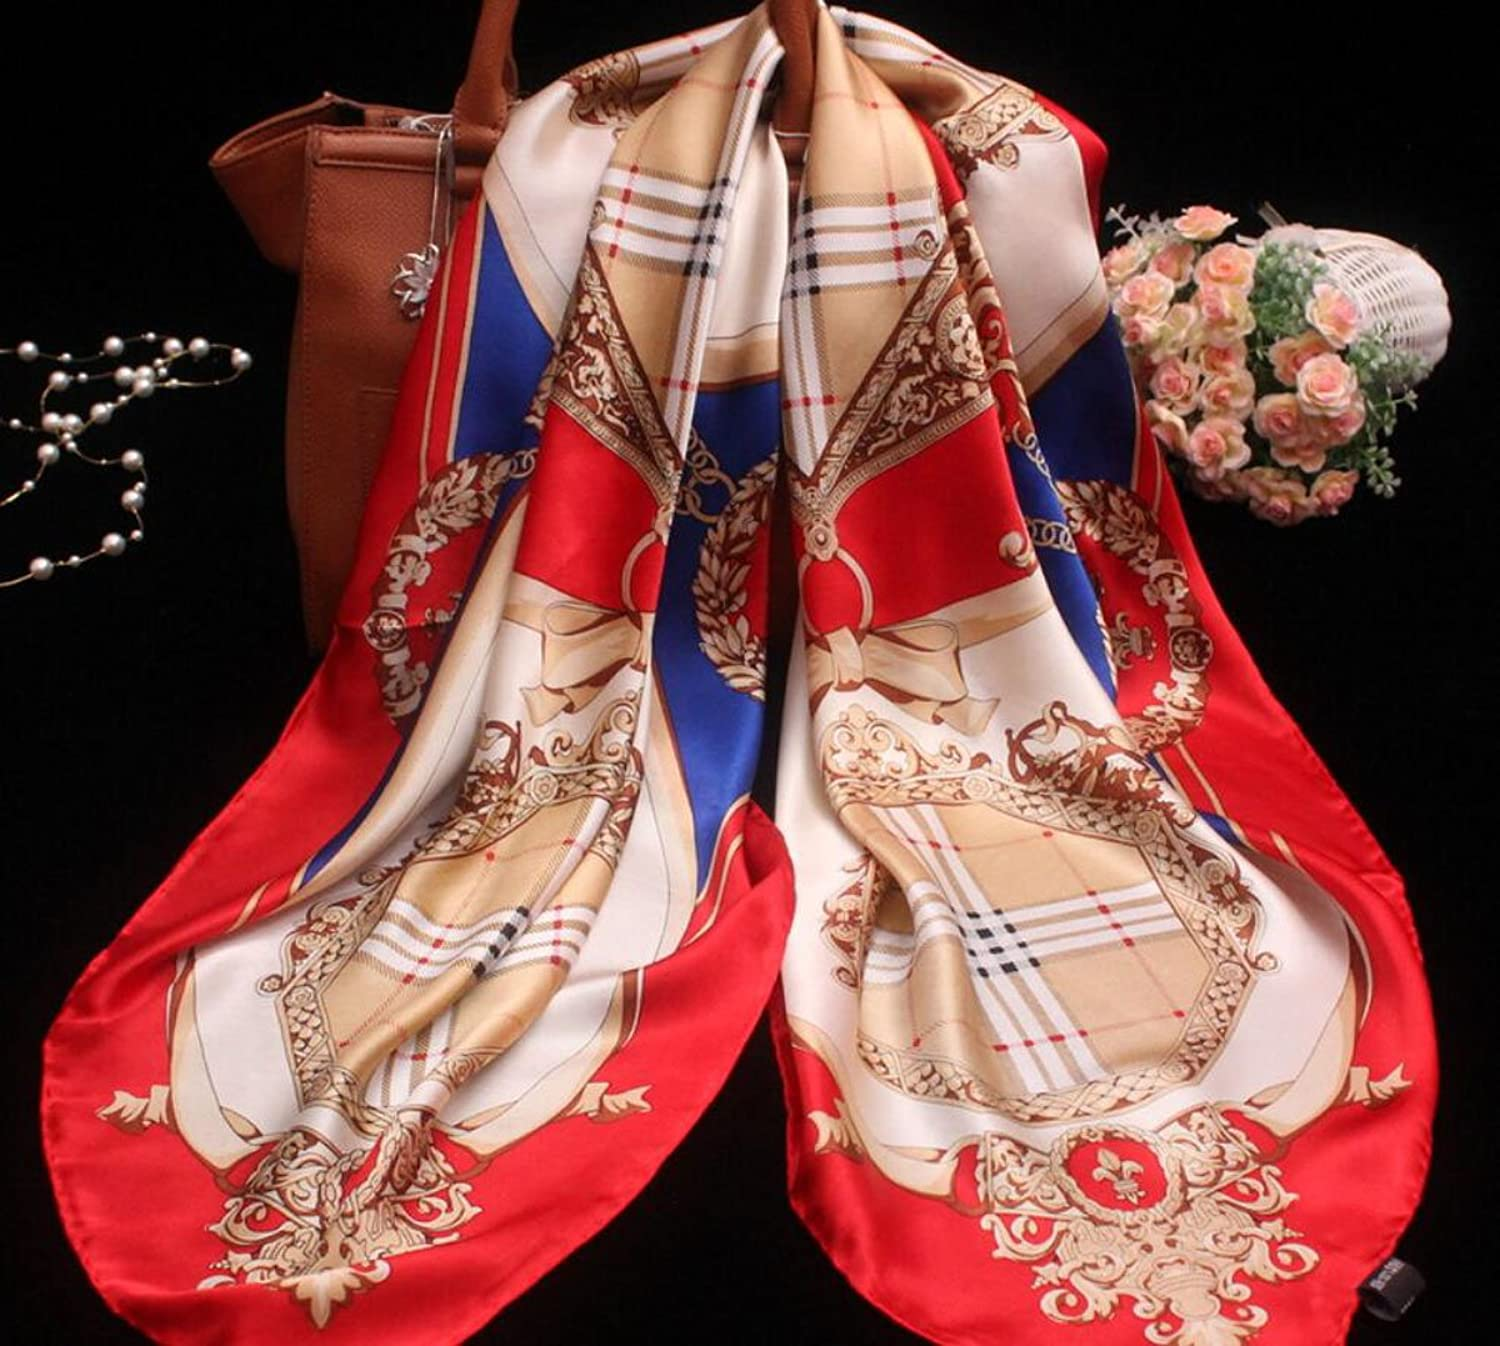 MBD Silk Scarf Square Scarf Printed Lattice Embroidery Embroidered Sunscreen Beach Towel Shawl (Length  110cm, Packing of 1) (color   RED)